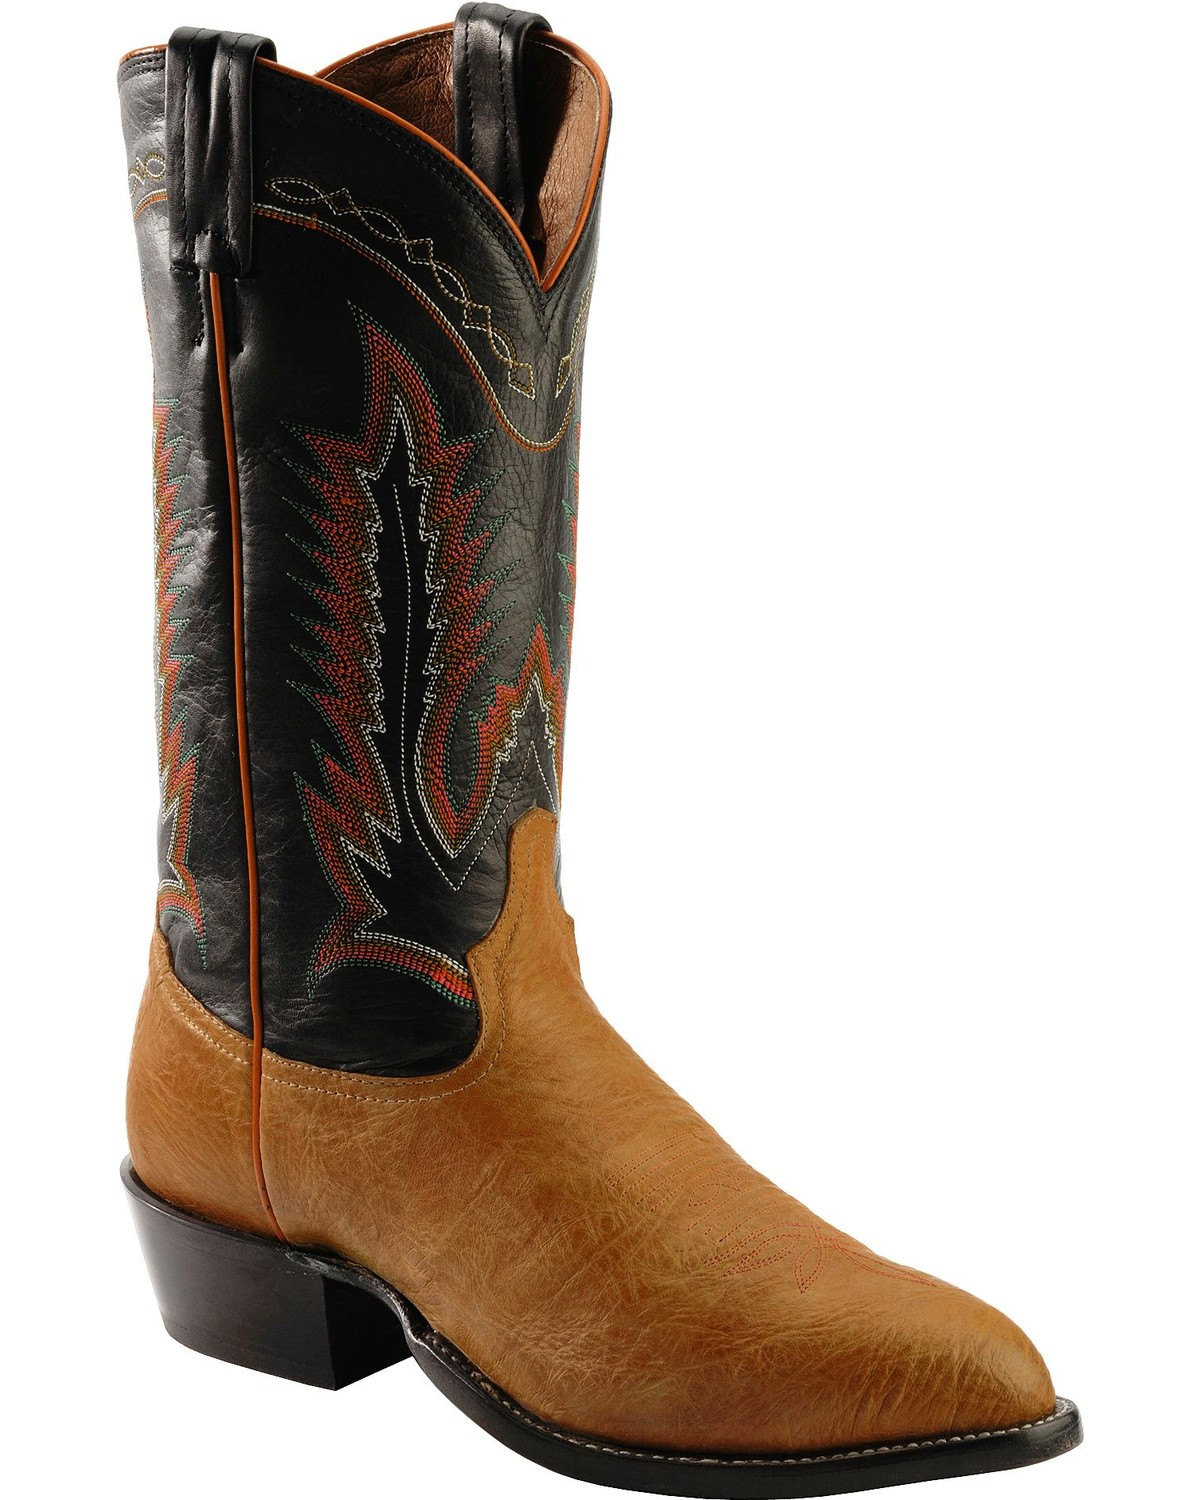 be78ed6407a Tony Lama Men's Western Boots